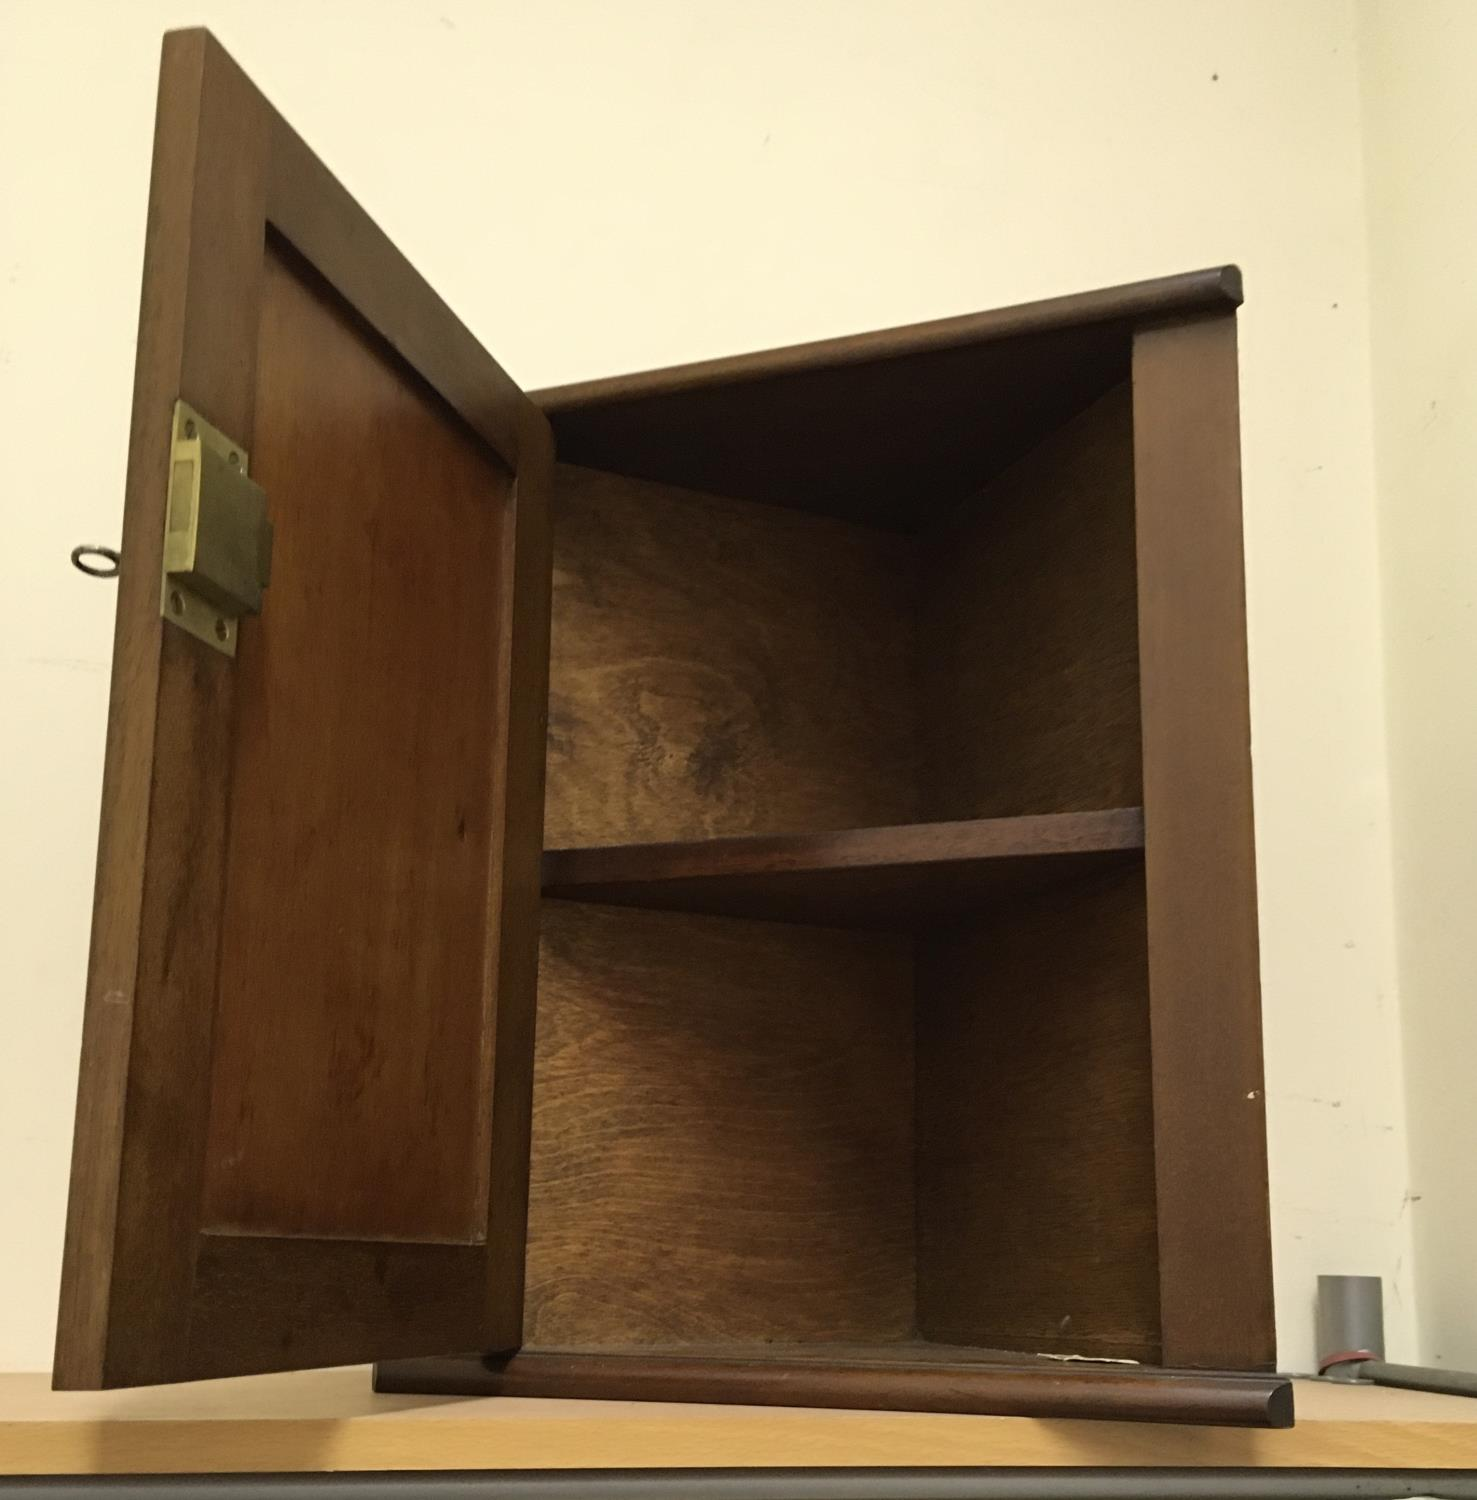 """Edwardian period medicine cupboard, wall hanging with a single shelf enclosed 16"""" tall 14"""" wide - Image 2 of 2"""